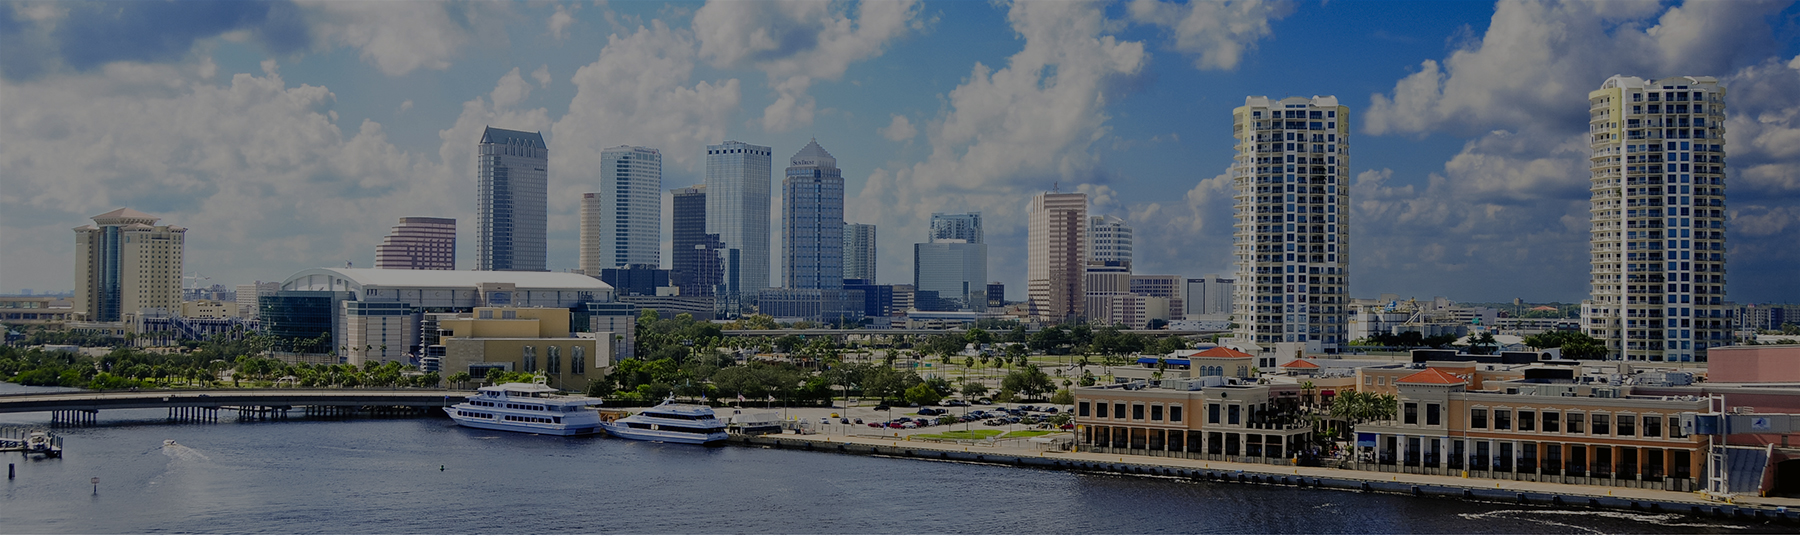 citybanner tampa